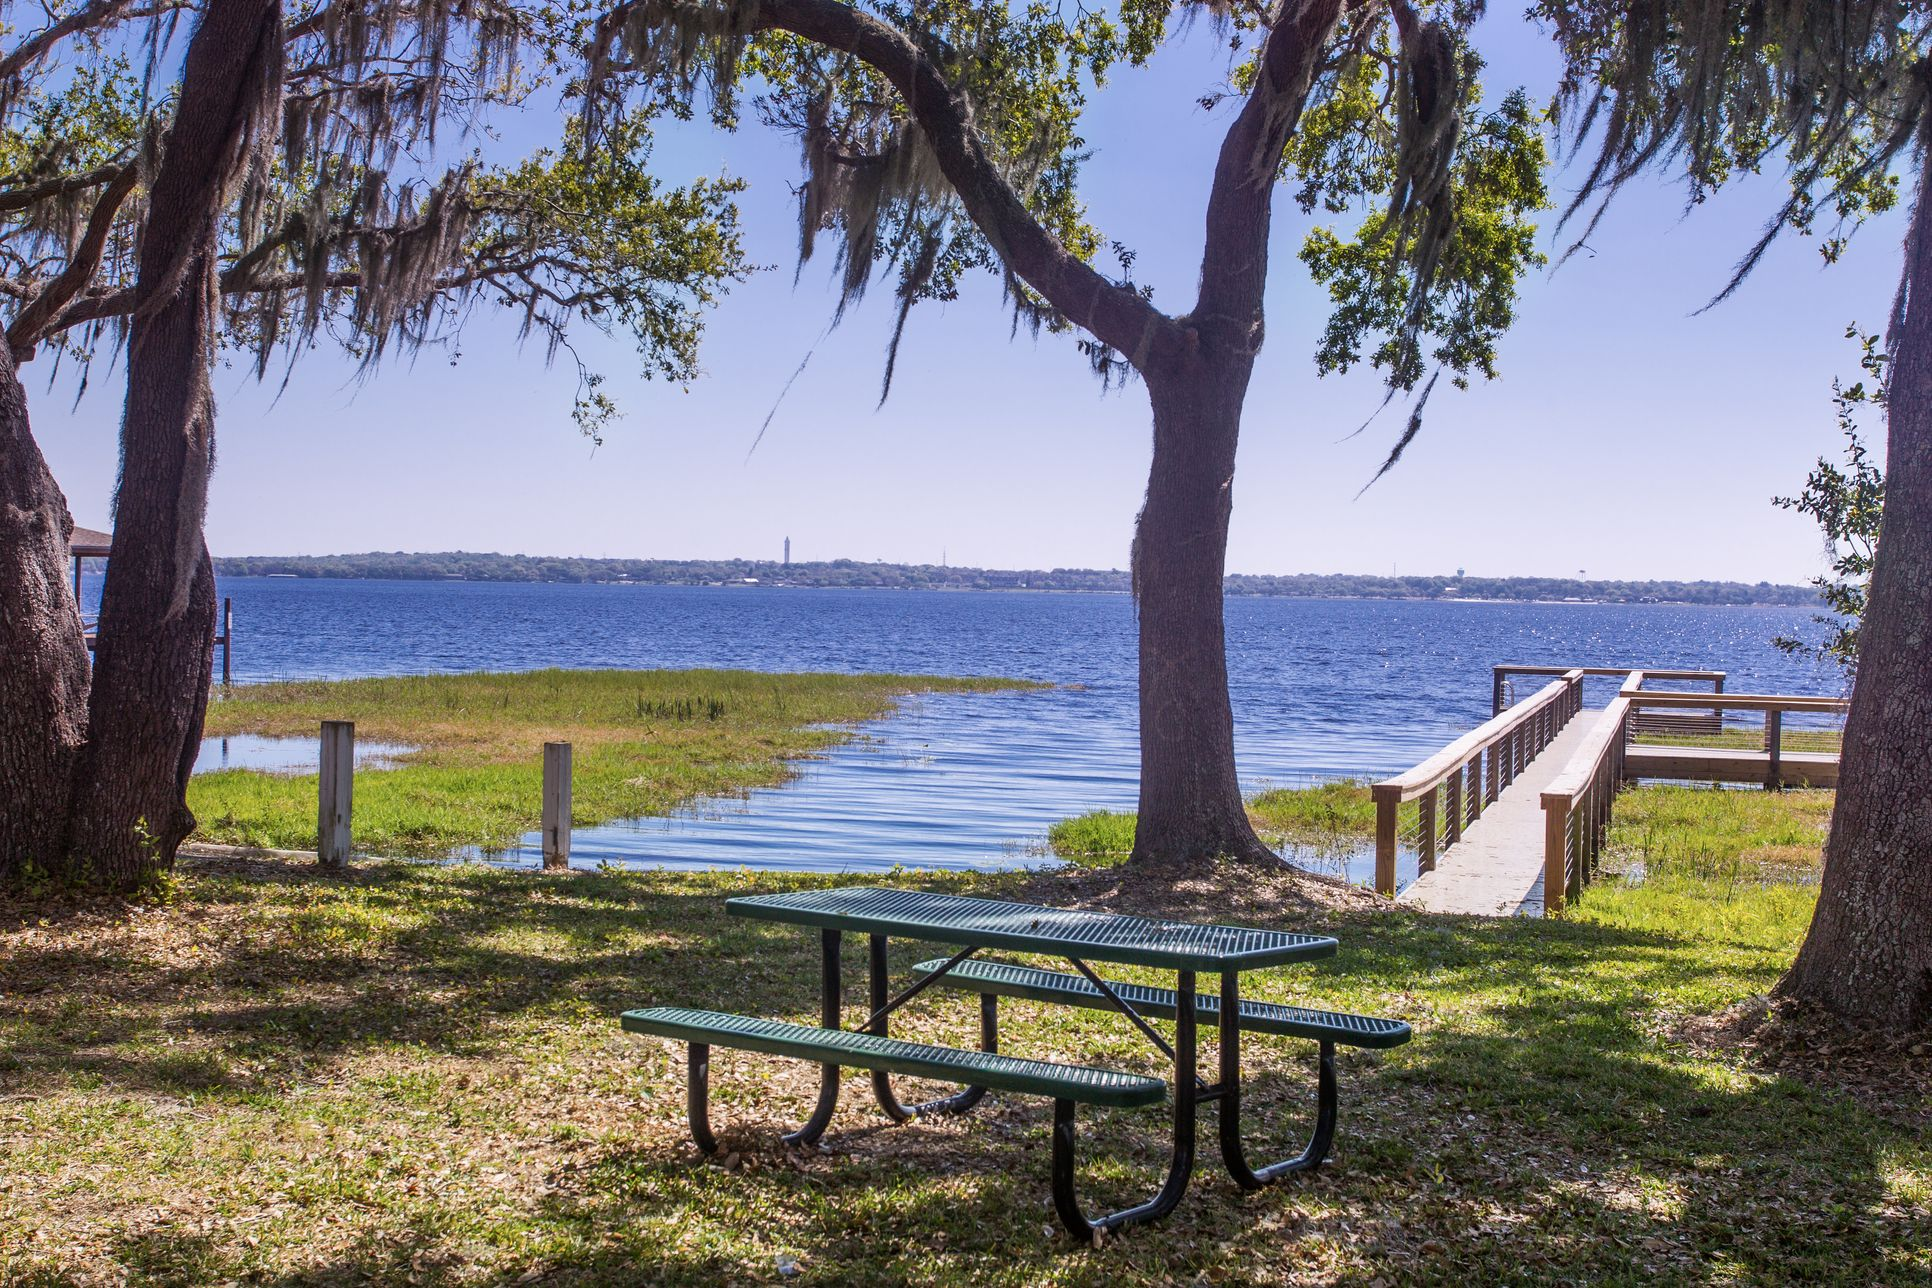 Lake Front Picnic Area